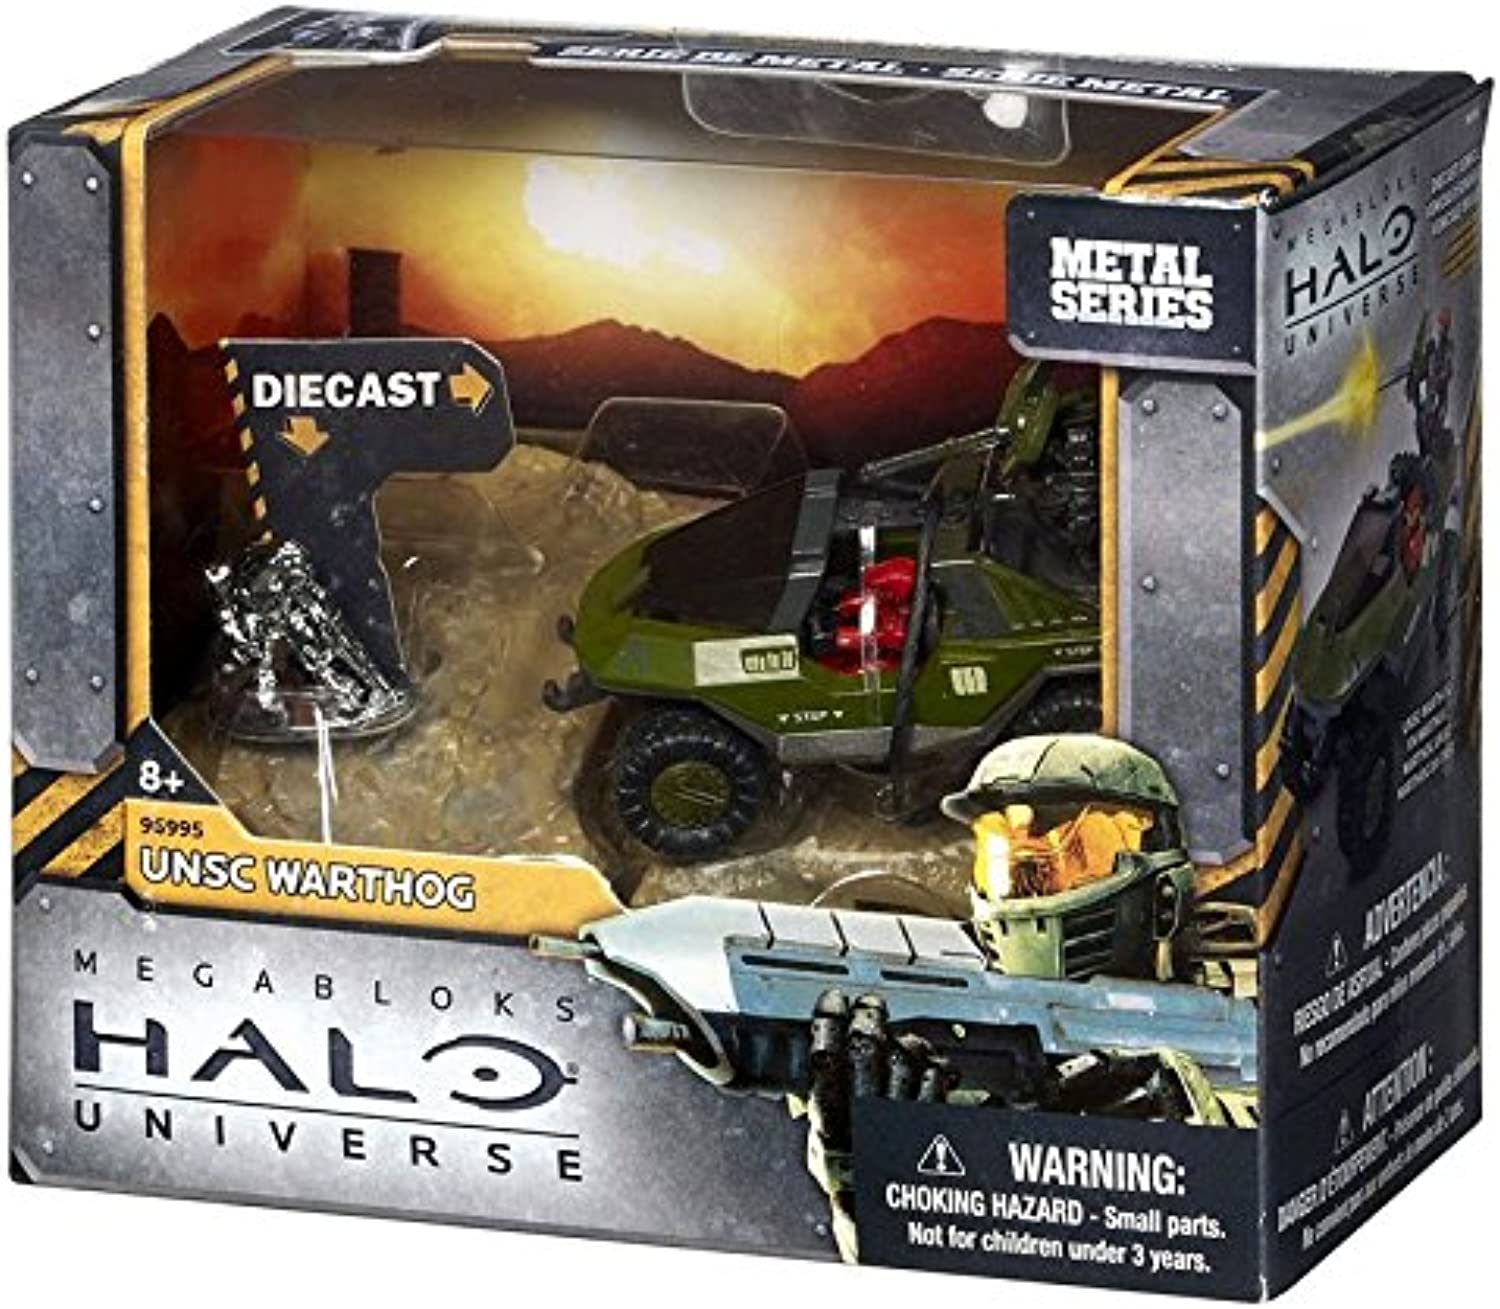 Halo Light Armored Vehicle - UNSC Warthog